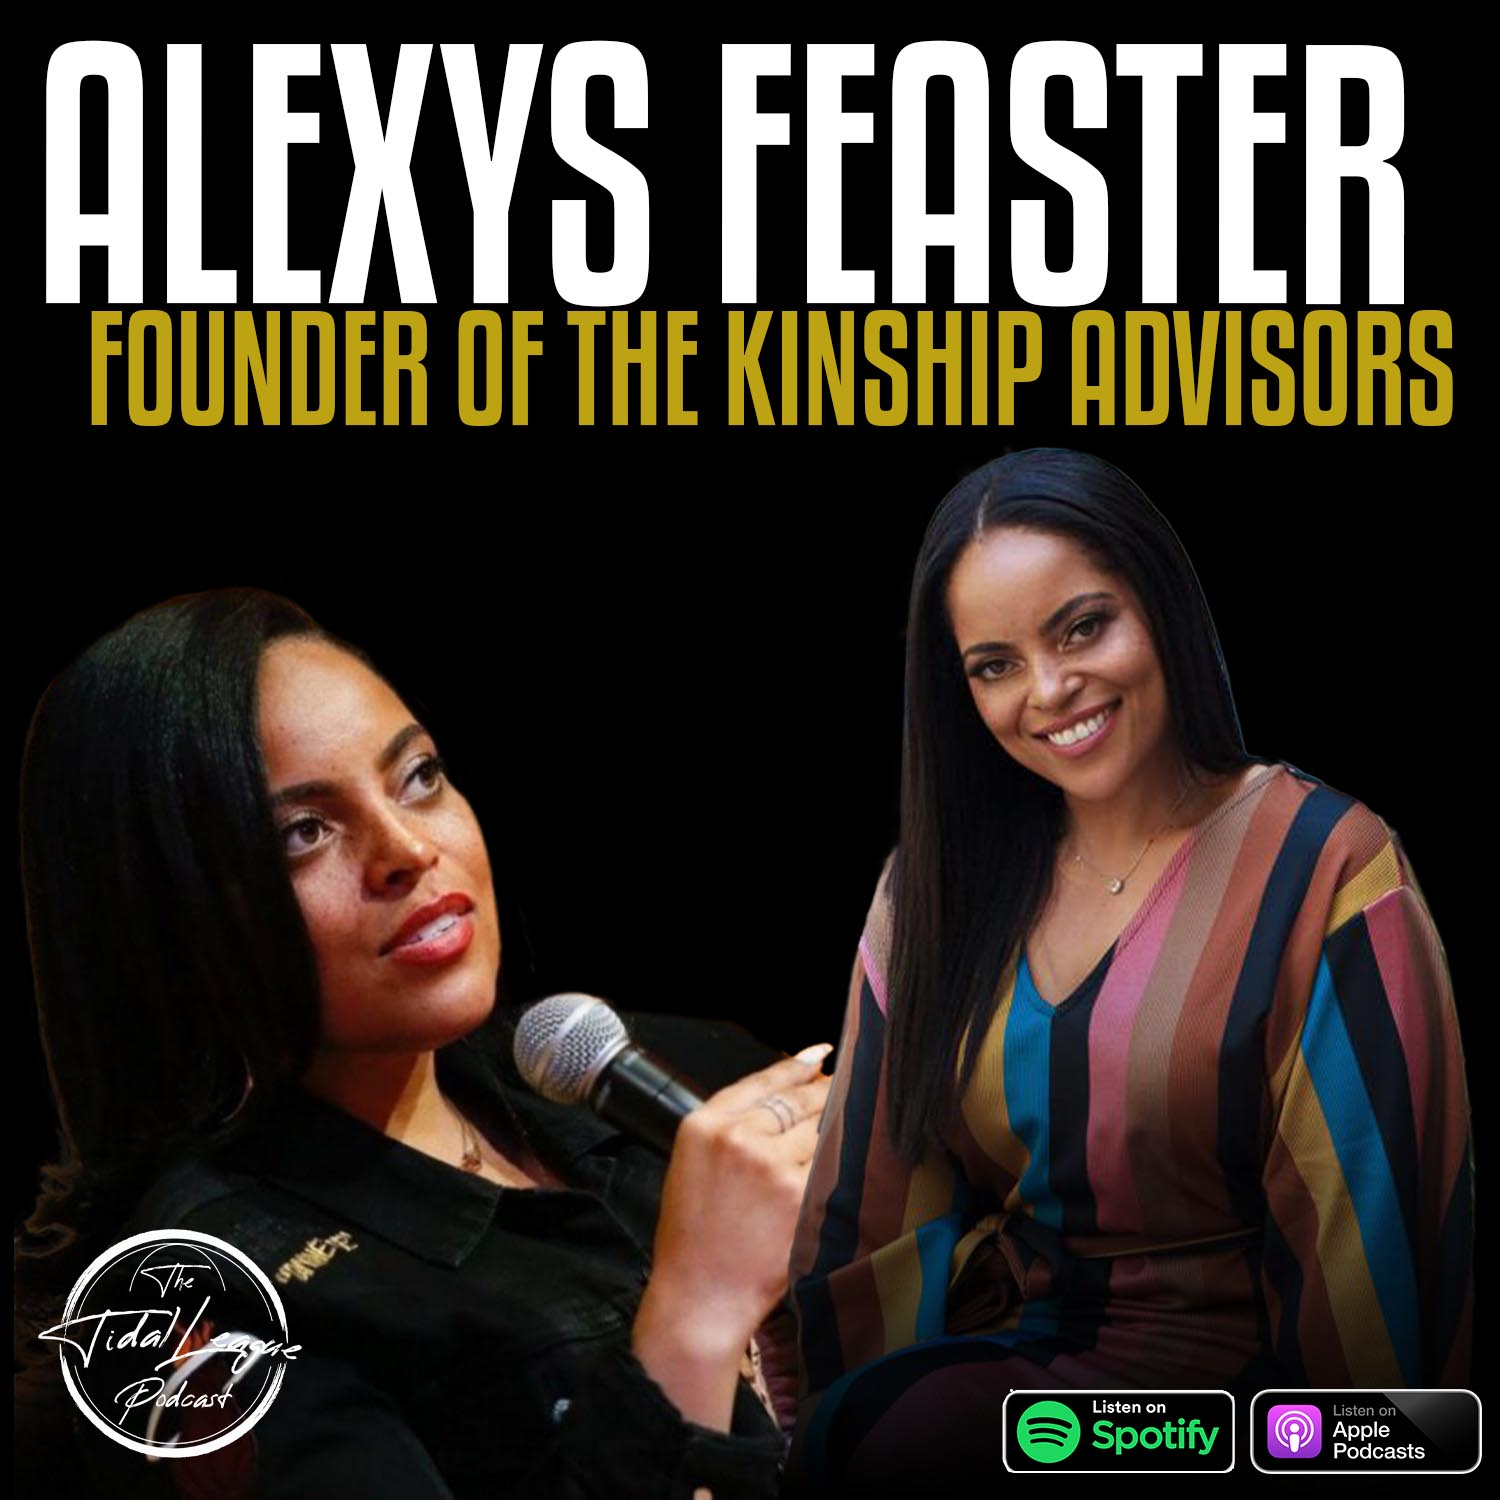 Q&A with Alexys Feaster Founder & Chief Impact Officer The Kinship Advisors